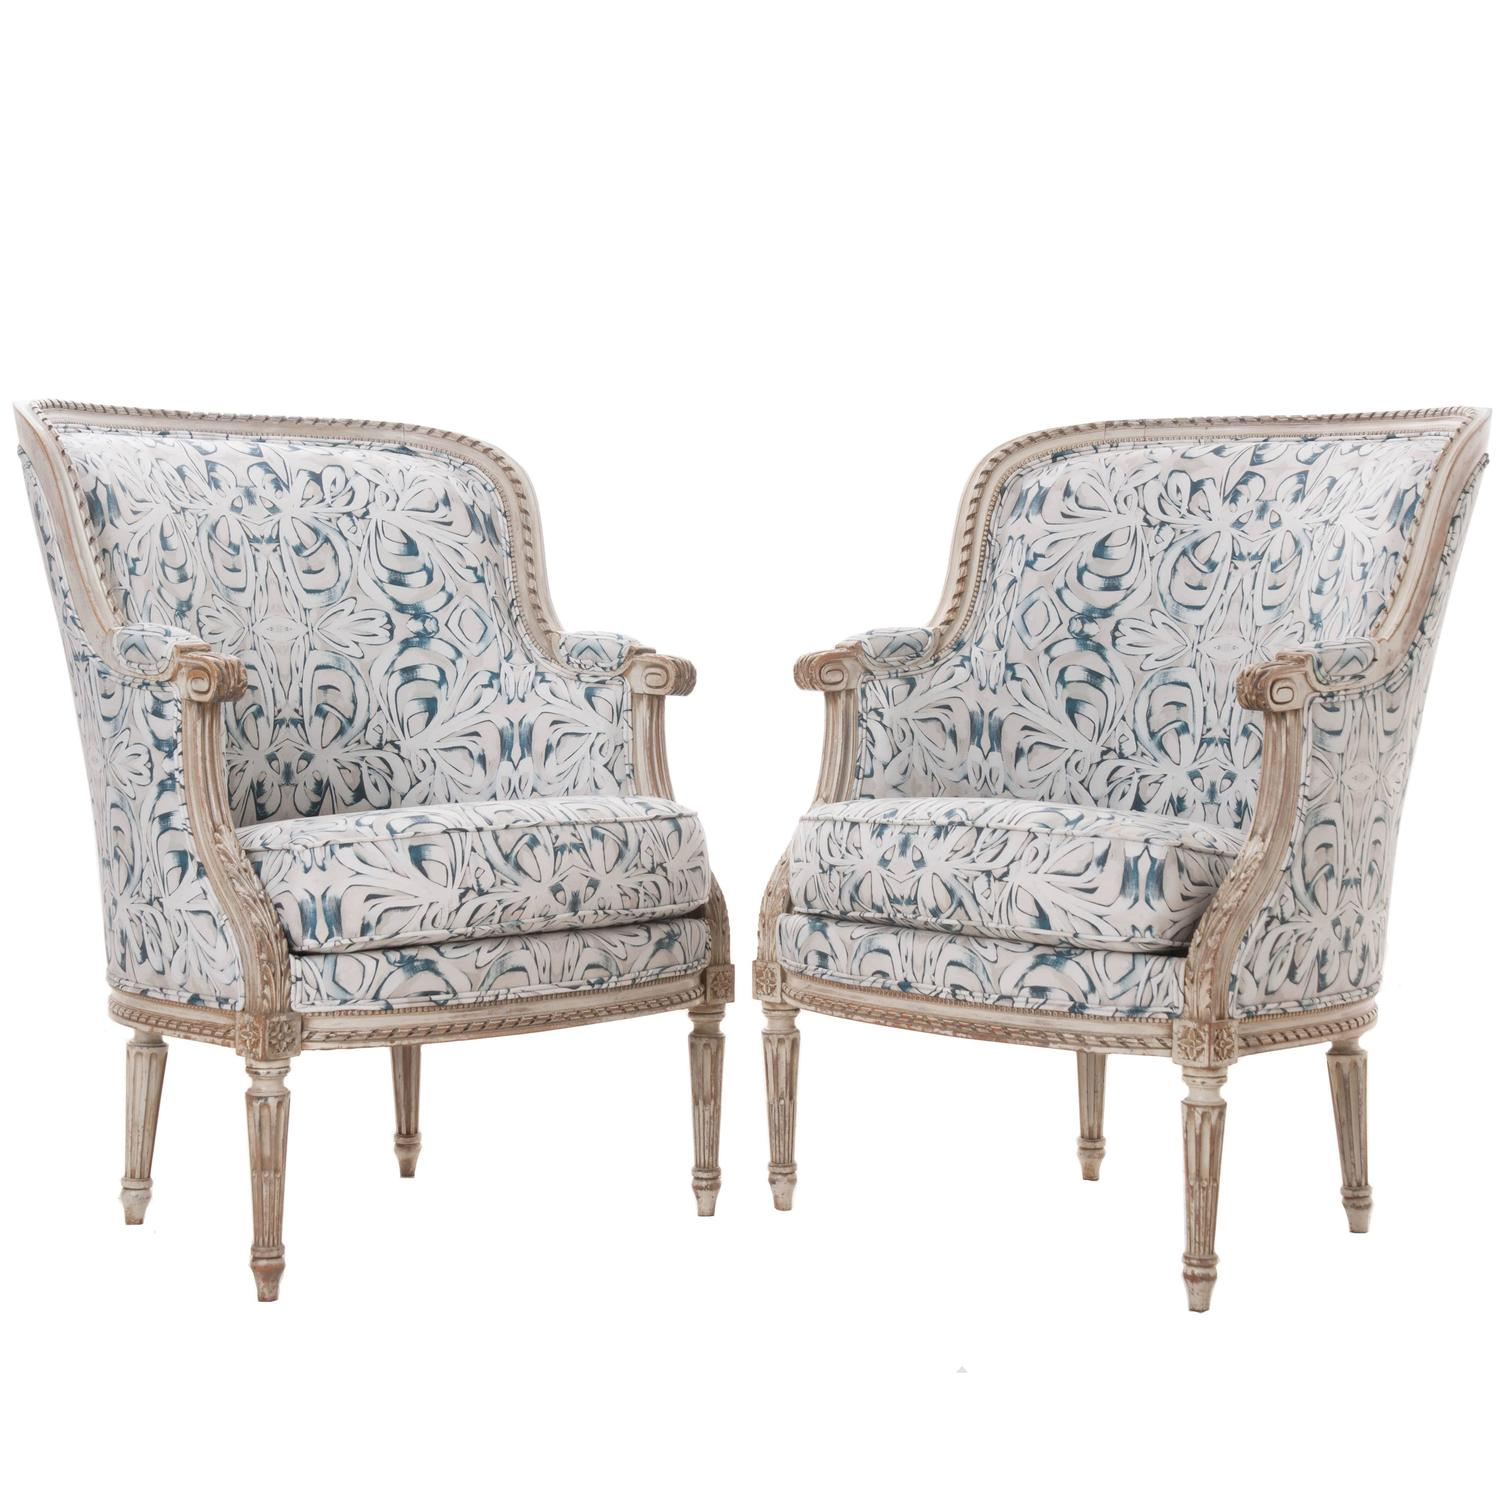 Missoni Fabric Covered Bergere Chair: Pair Of French 19th Century Louis XVI Bergères Covered In